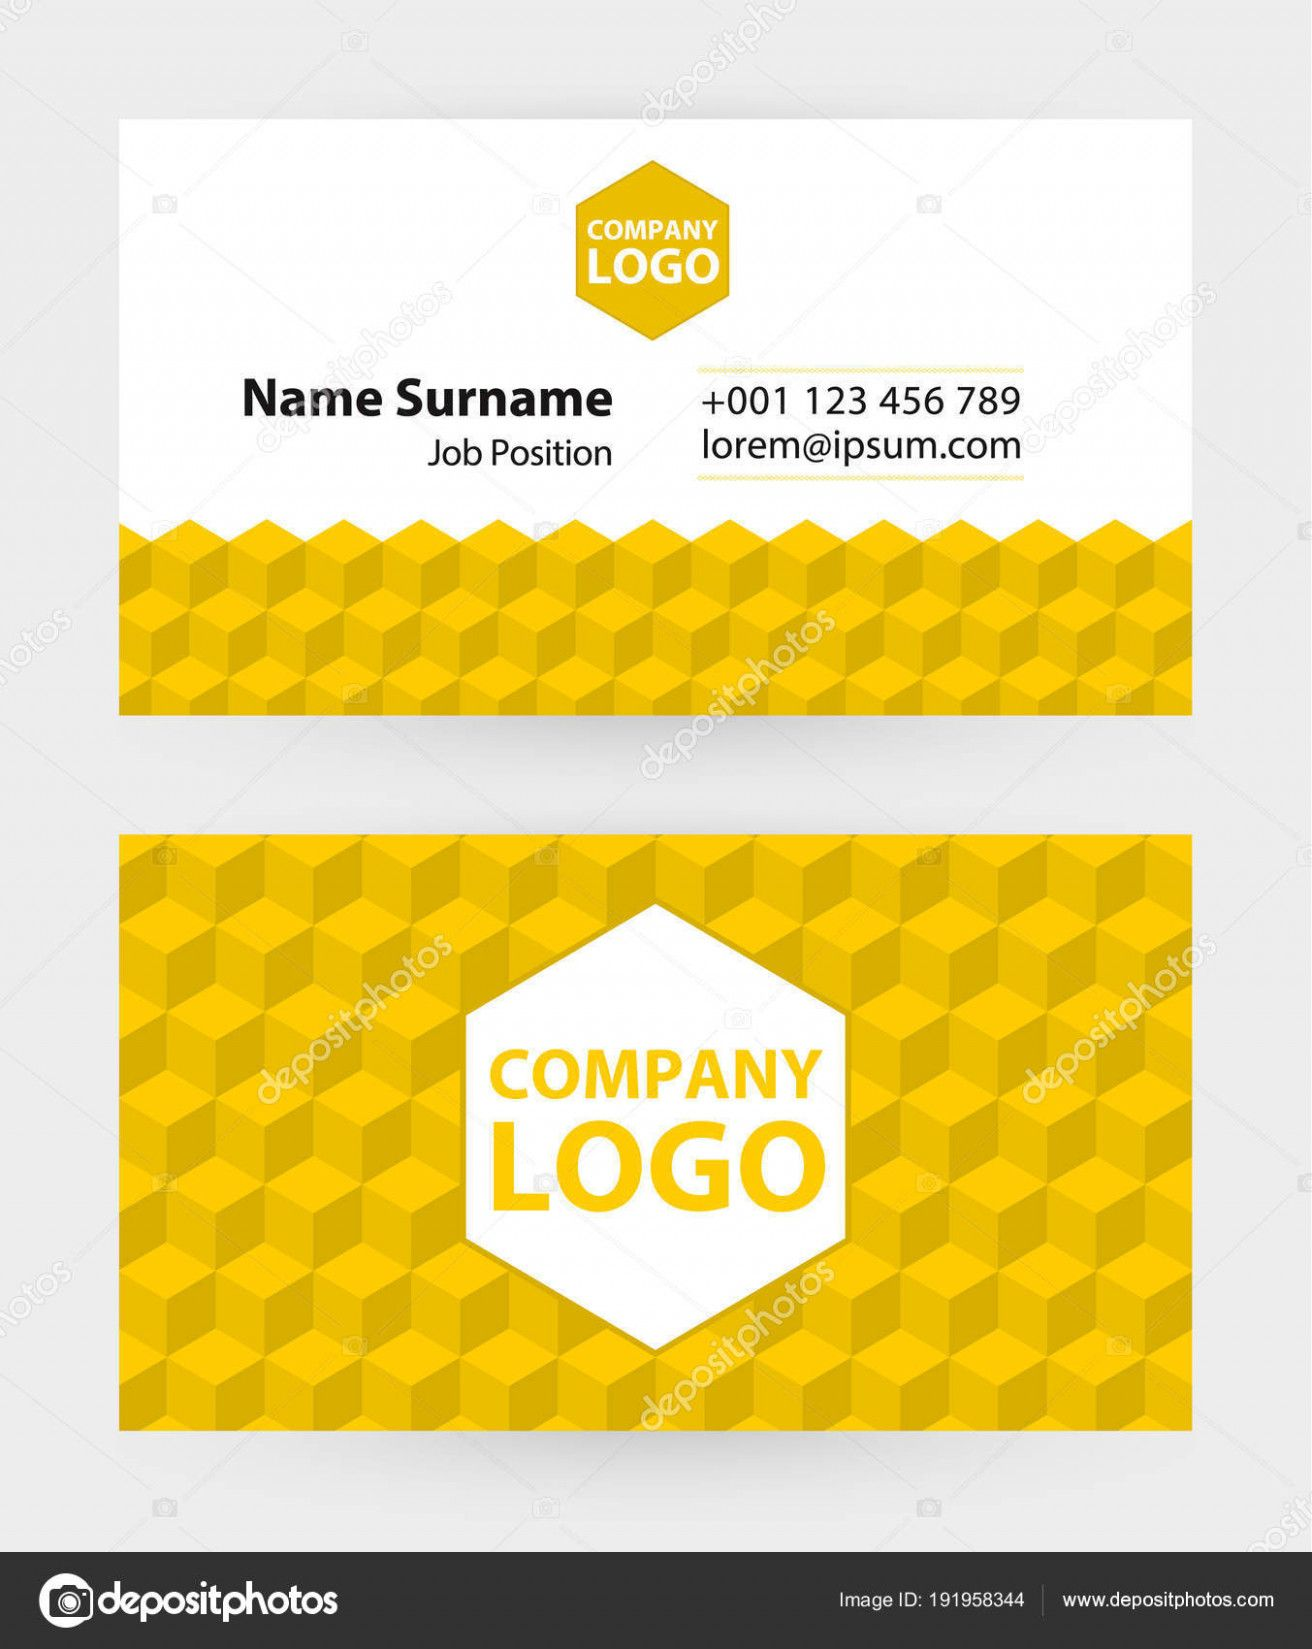 What Is The Size Of A Business Card In Cm Business Cards